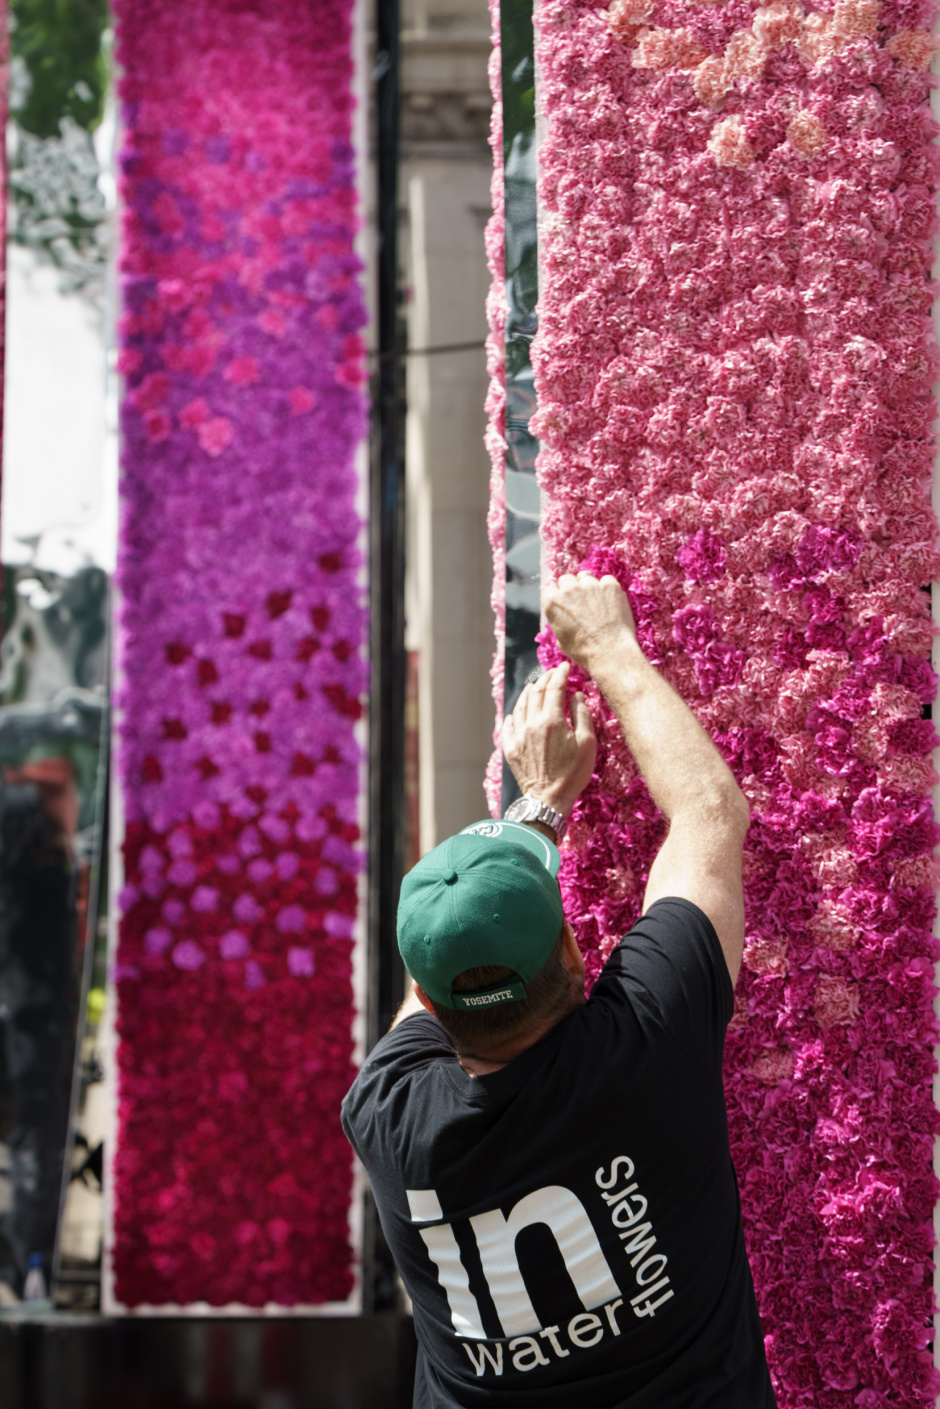 Robert Hornsby, Florist and Installation Designer from In Water Flowers puts the finishing touches to 'Neoteric' the design for the Bull Ring Gate at Chelsea Flower Show